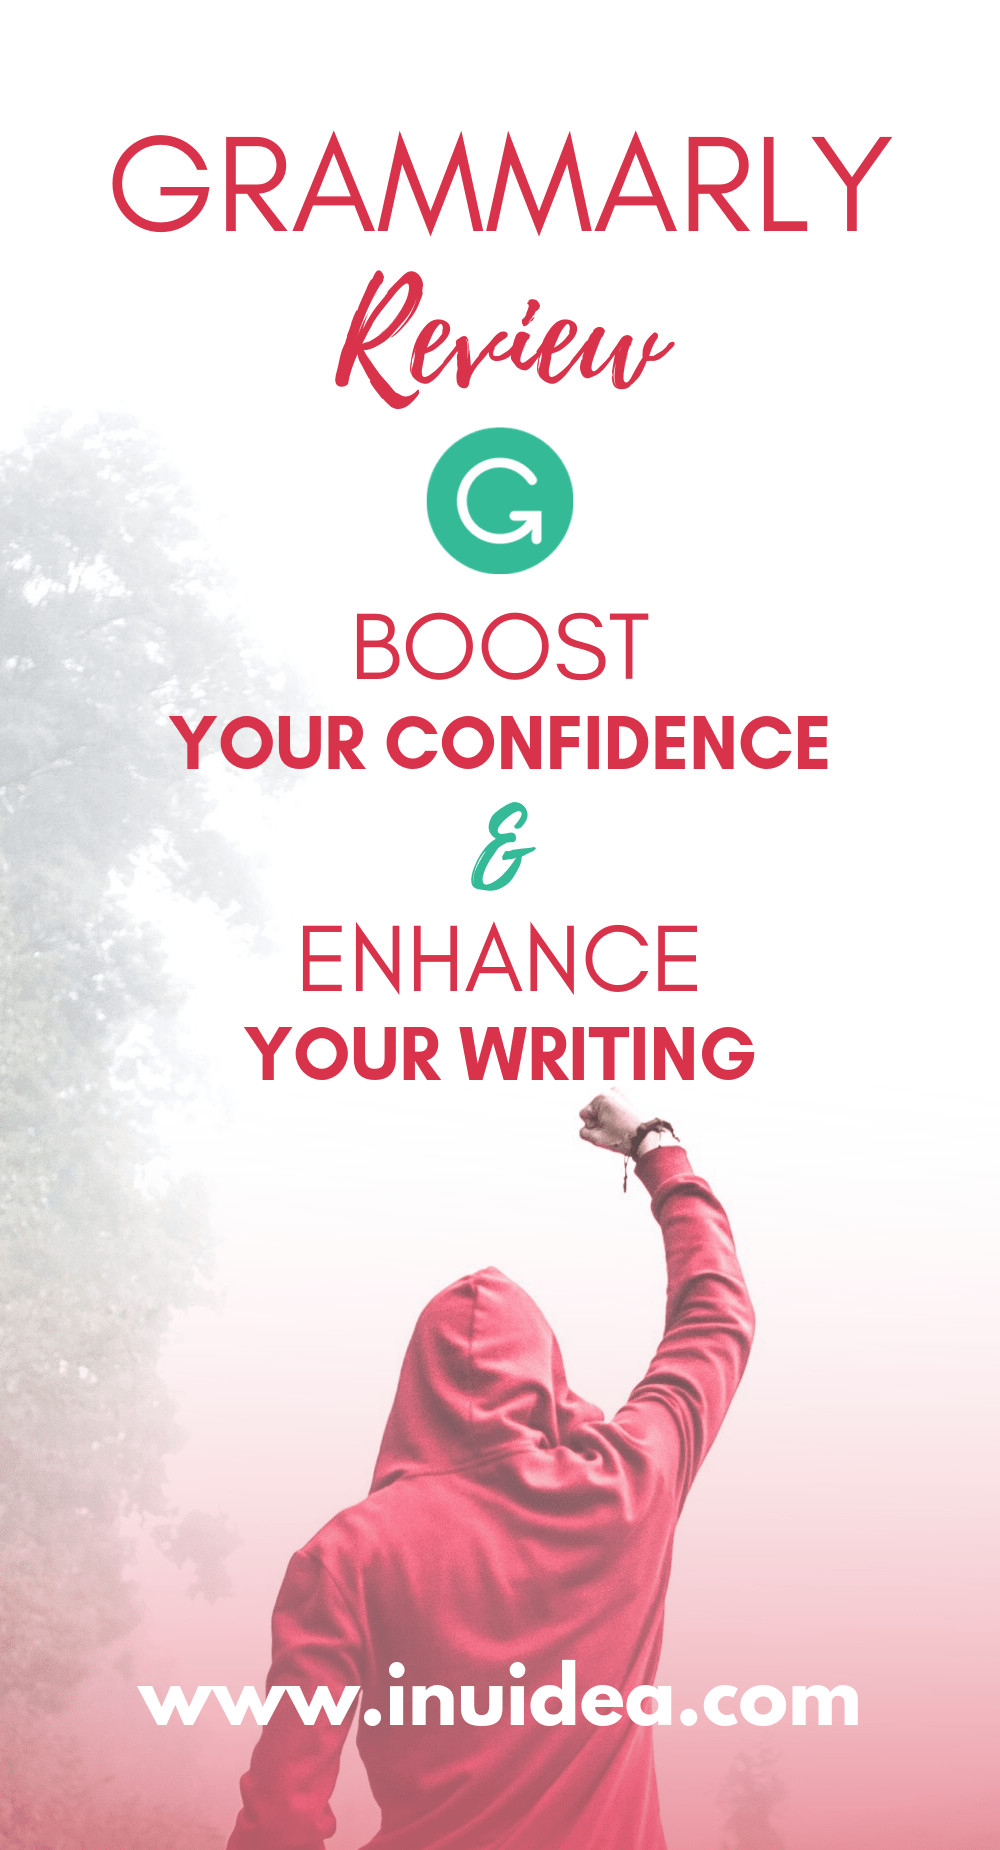 Grammarly Proofreading Software Dimensions Cm